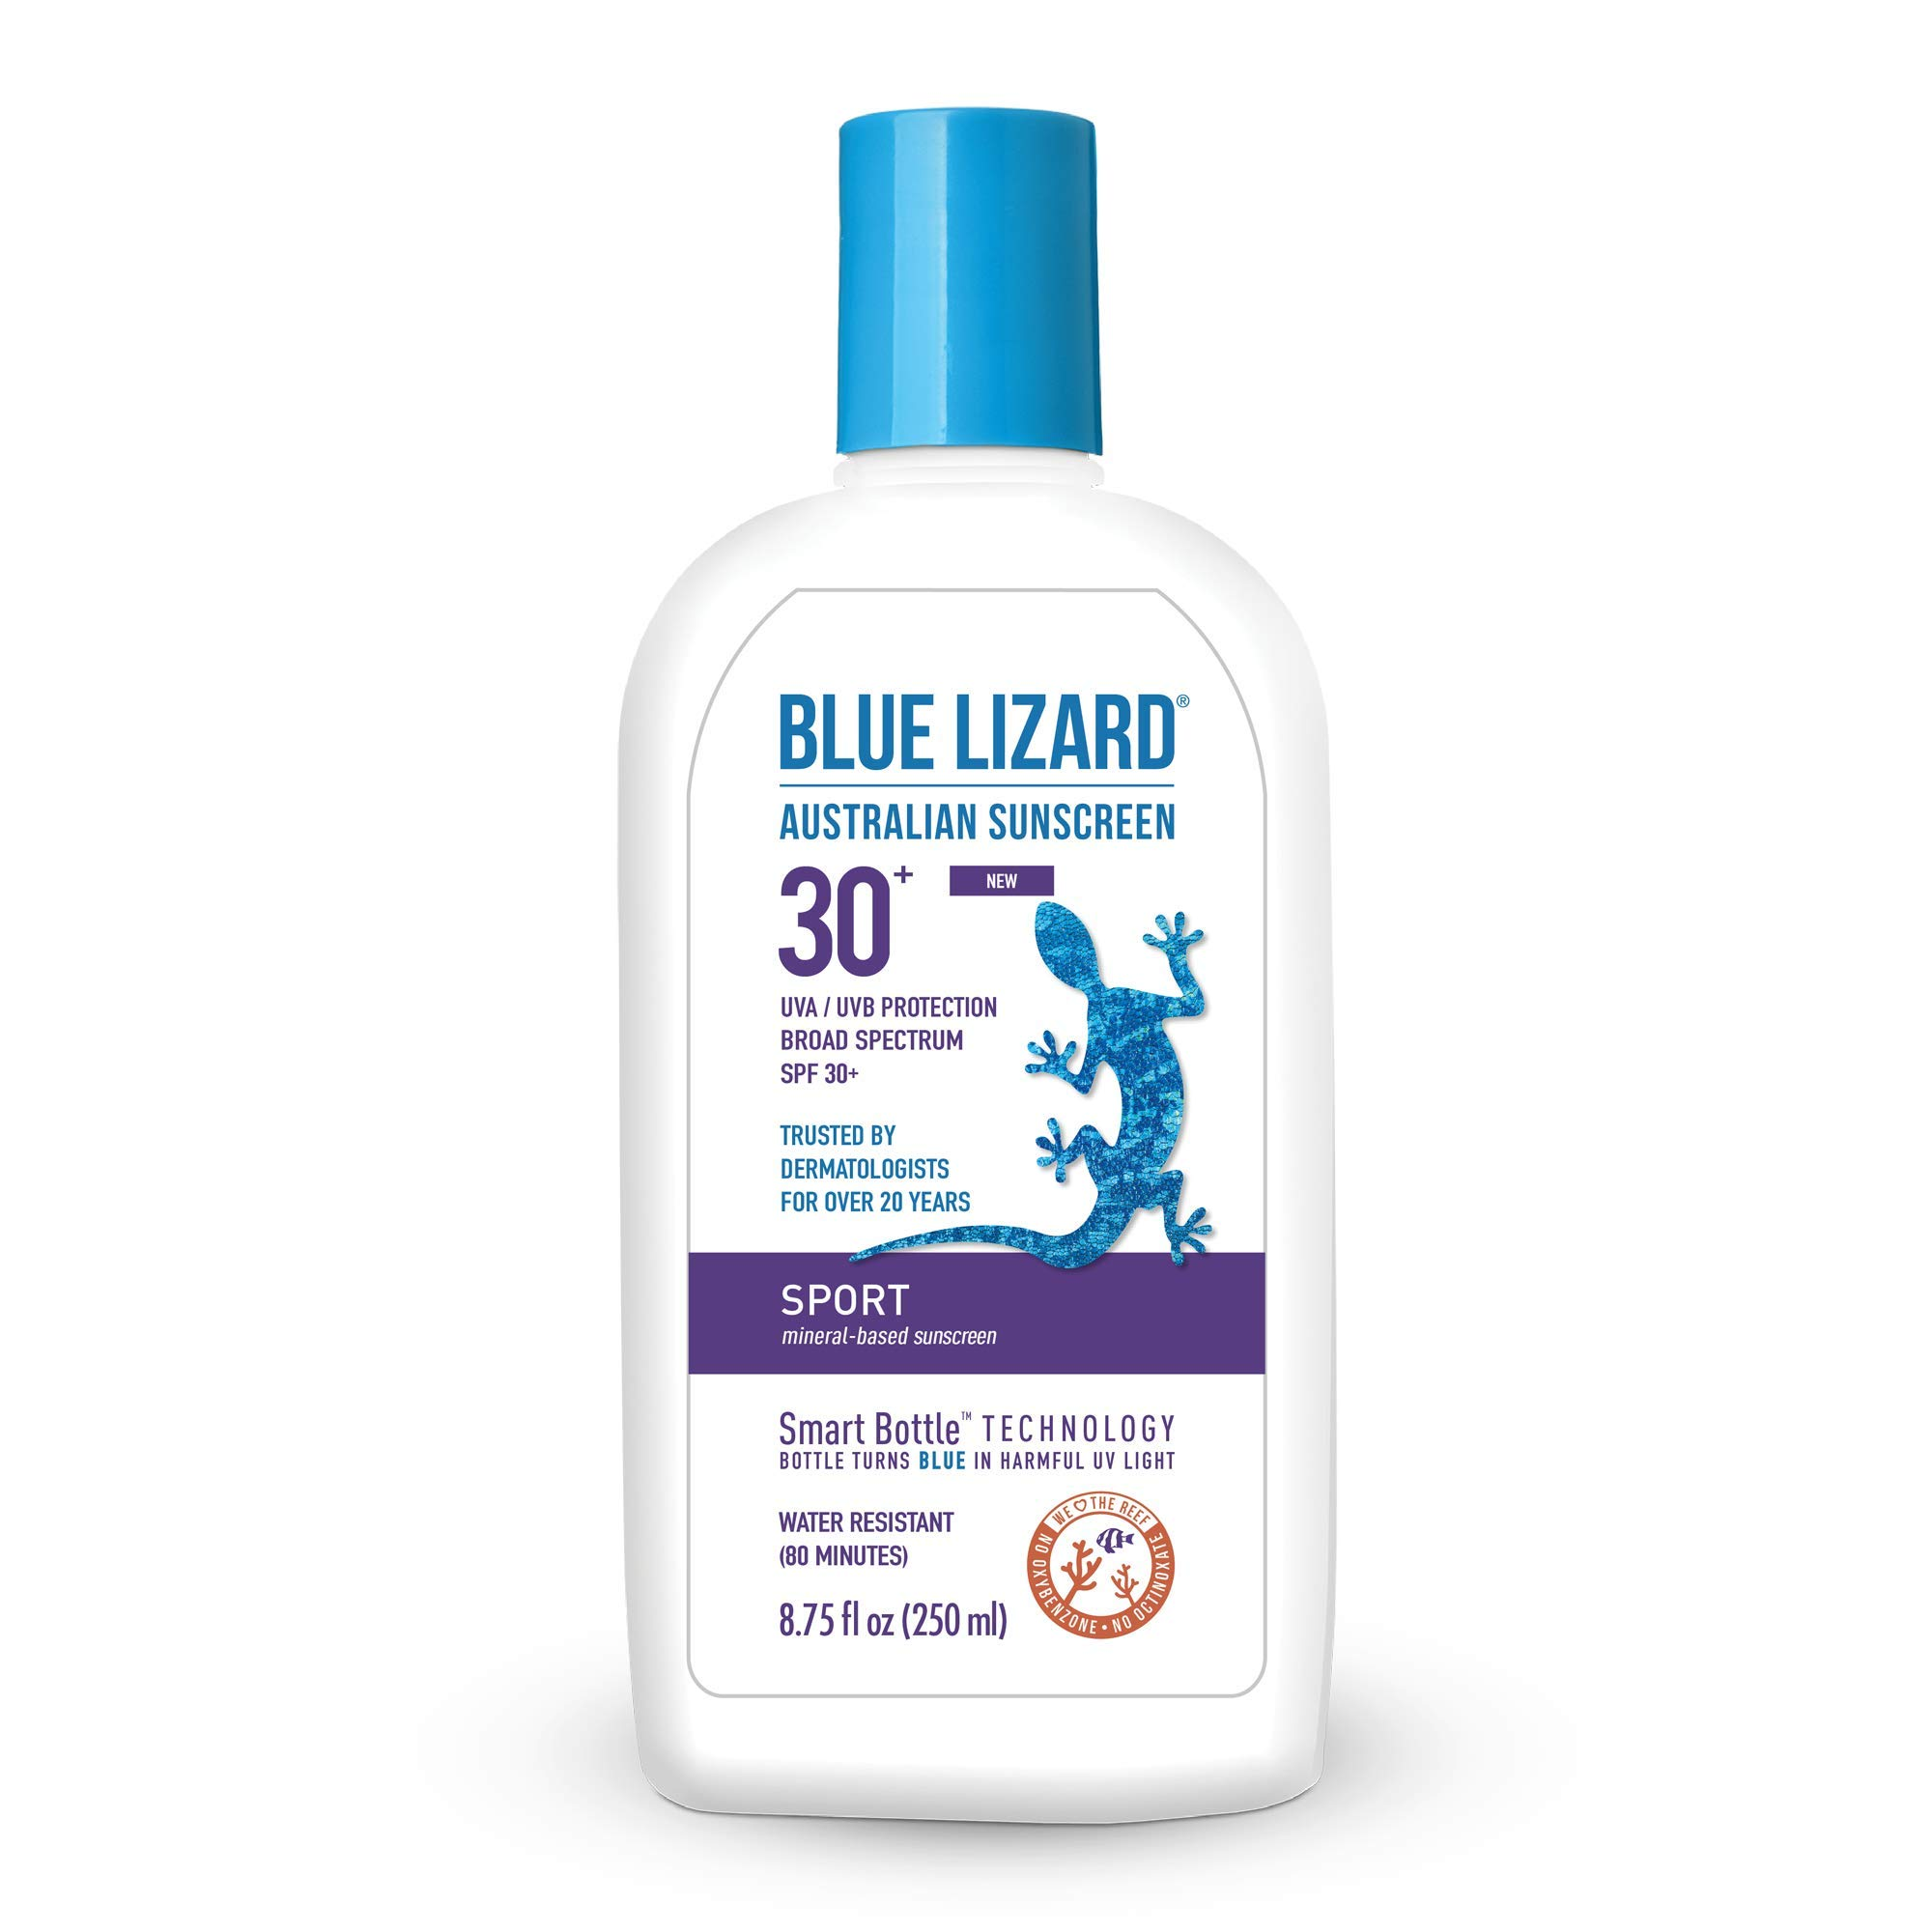 Blue Lizard Sport Mineral Sunscreen with No Chemical Ingredients SPF 30 UVA/UVB Protection, 8.75 oz Bottle